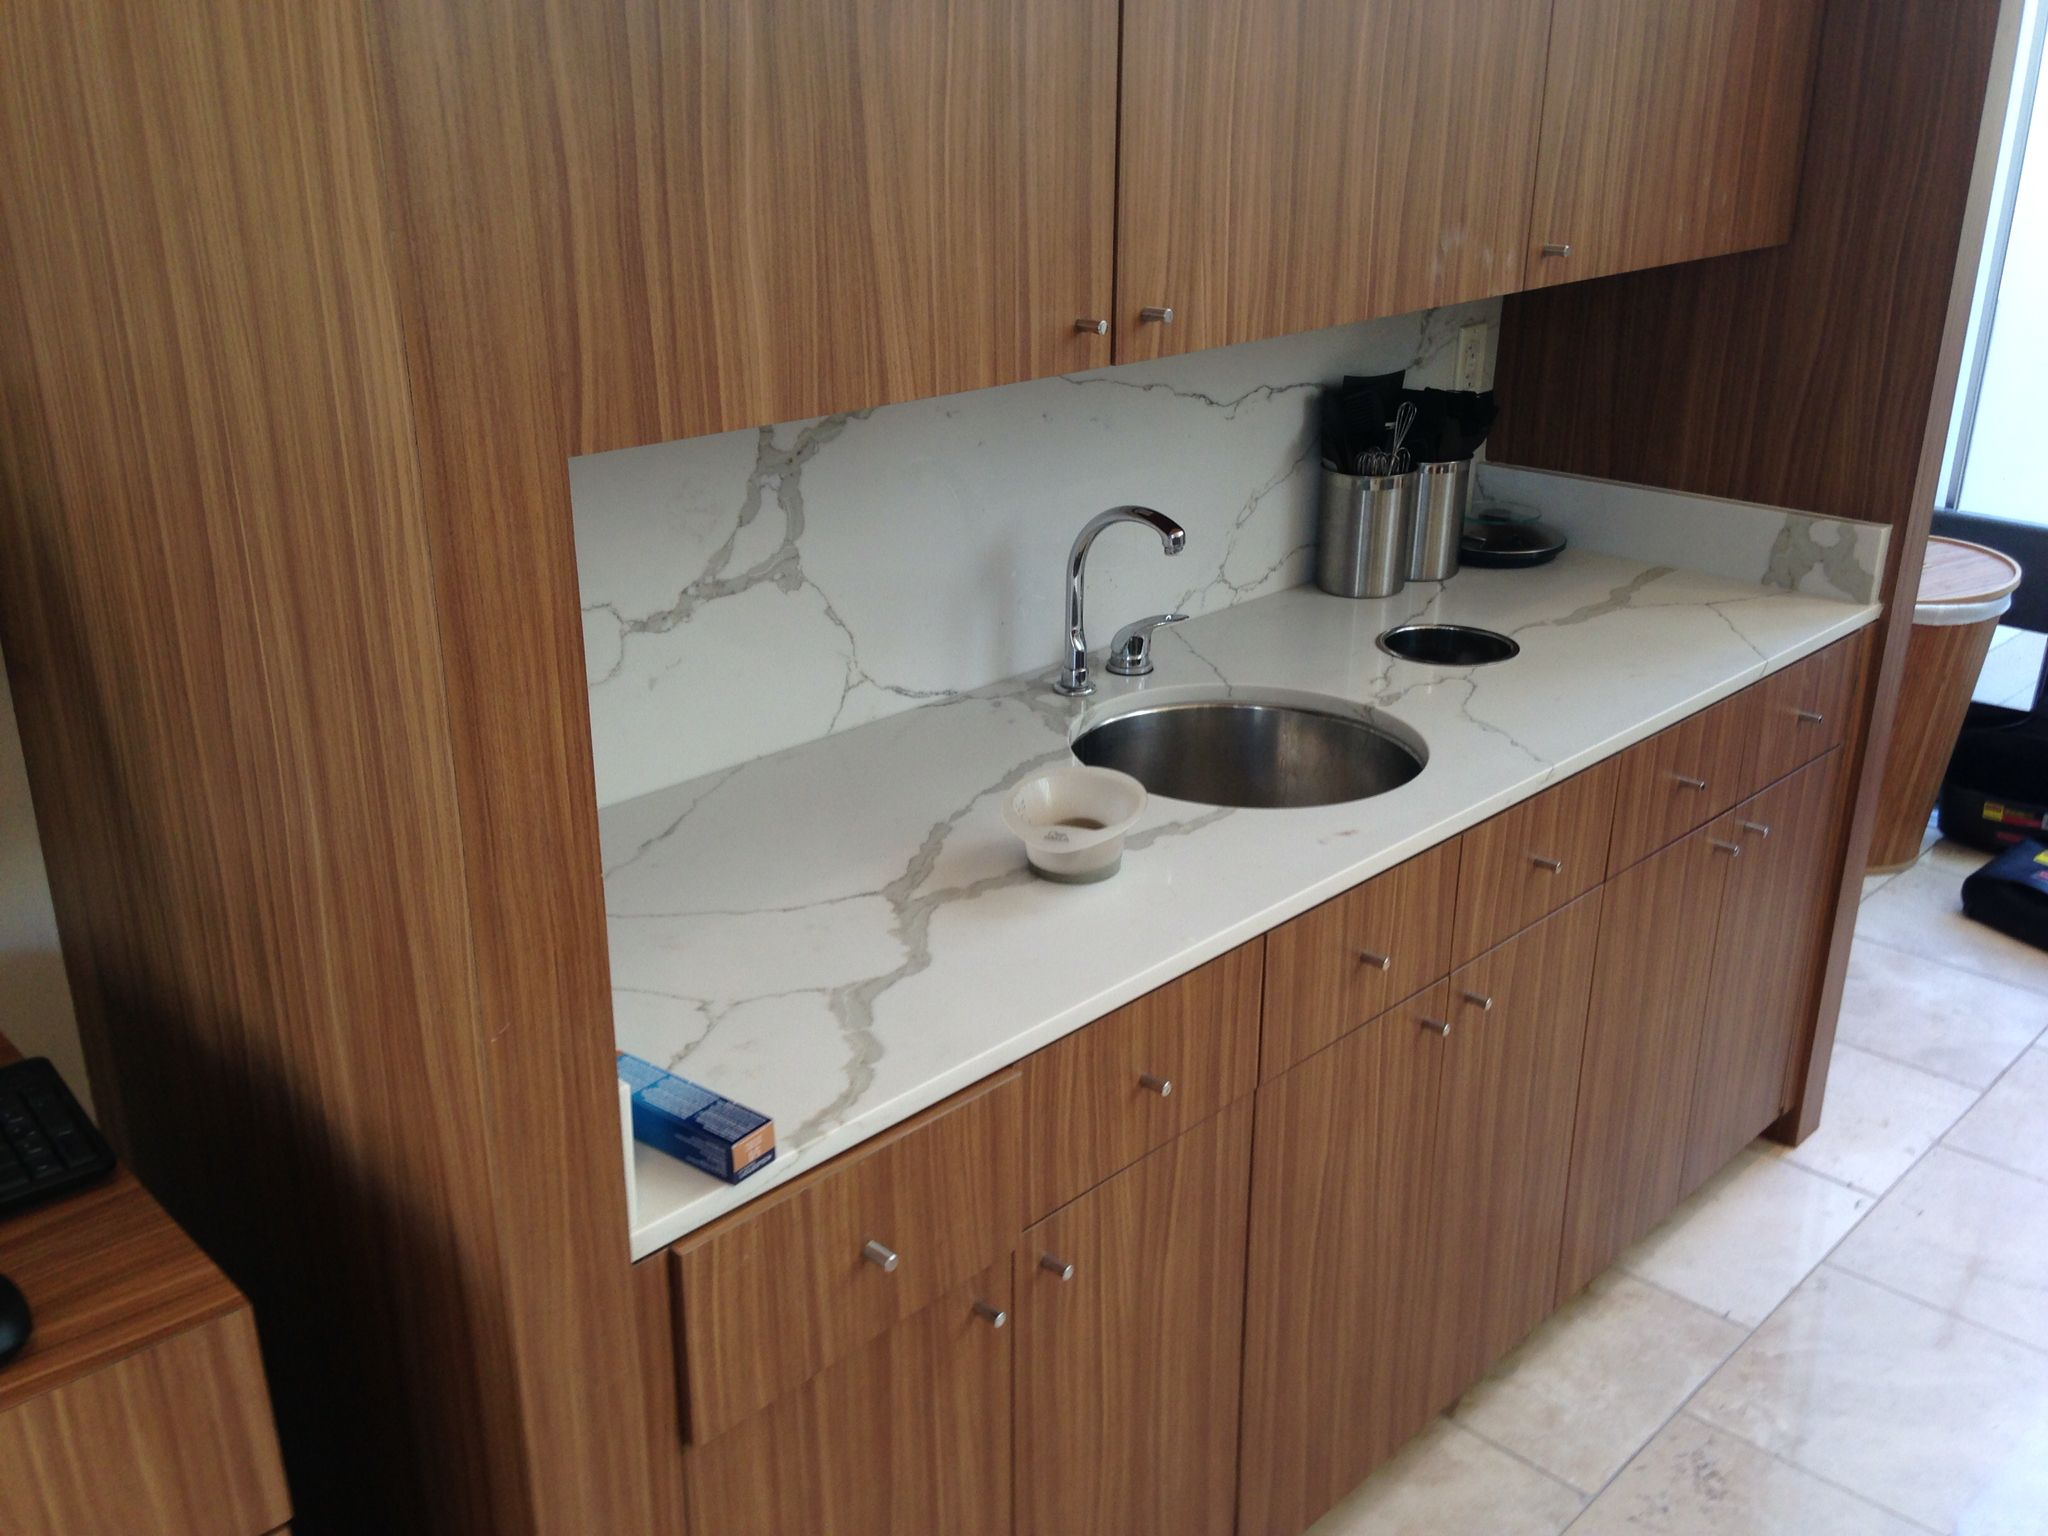 Daltile One Quartz Nq06 Installed On Counter Top